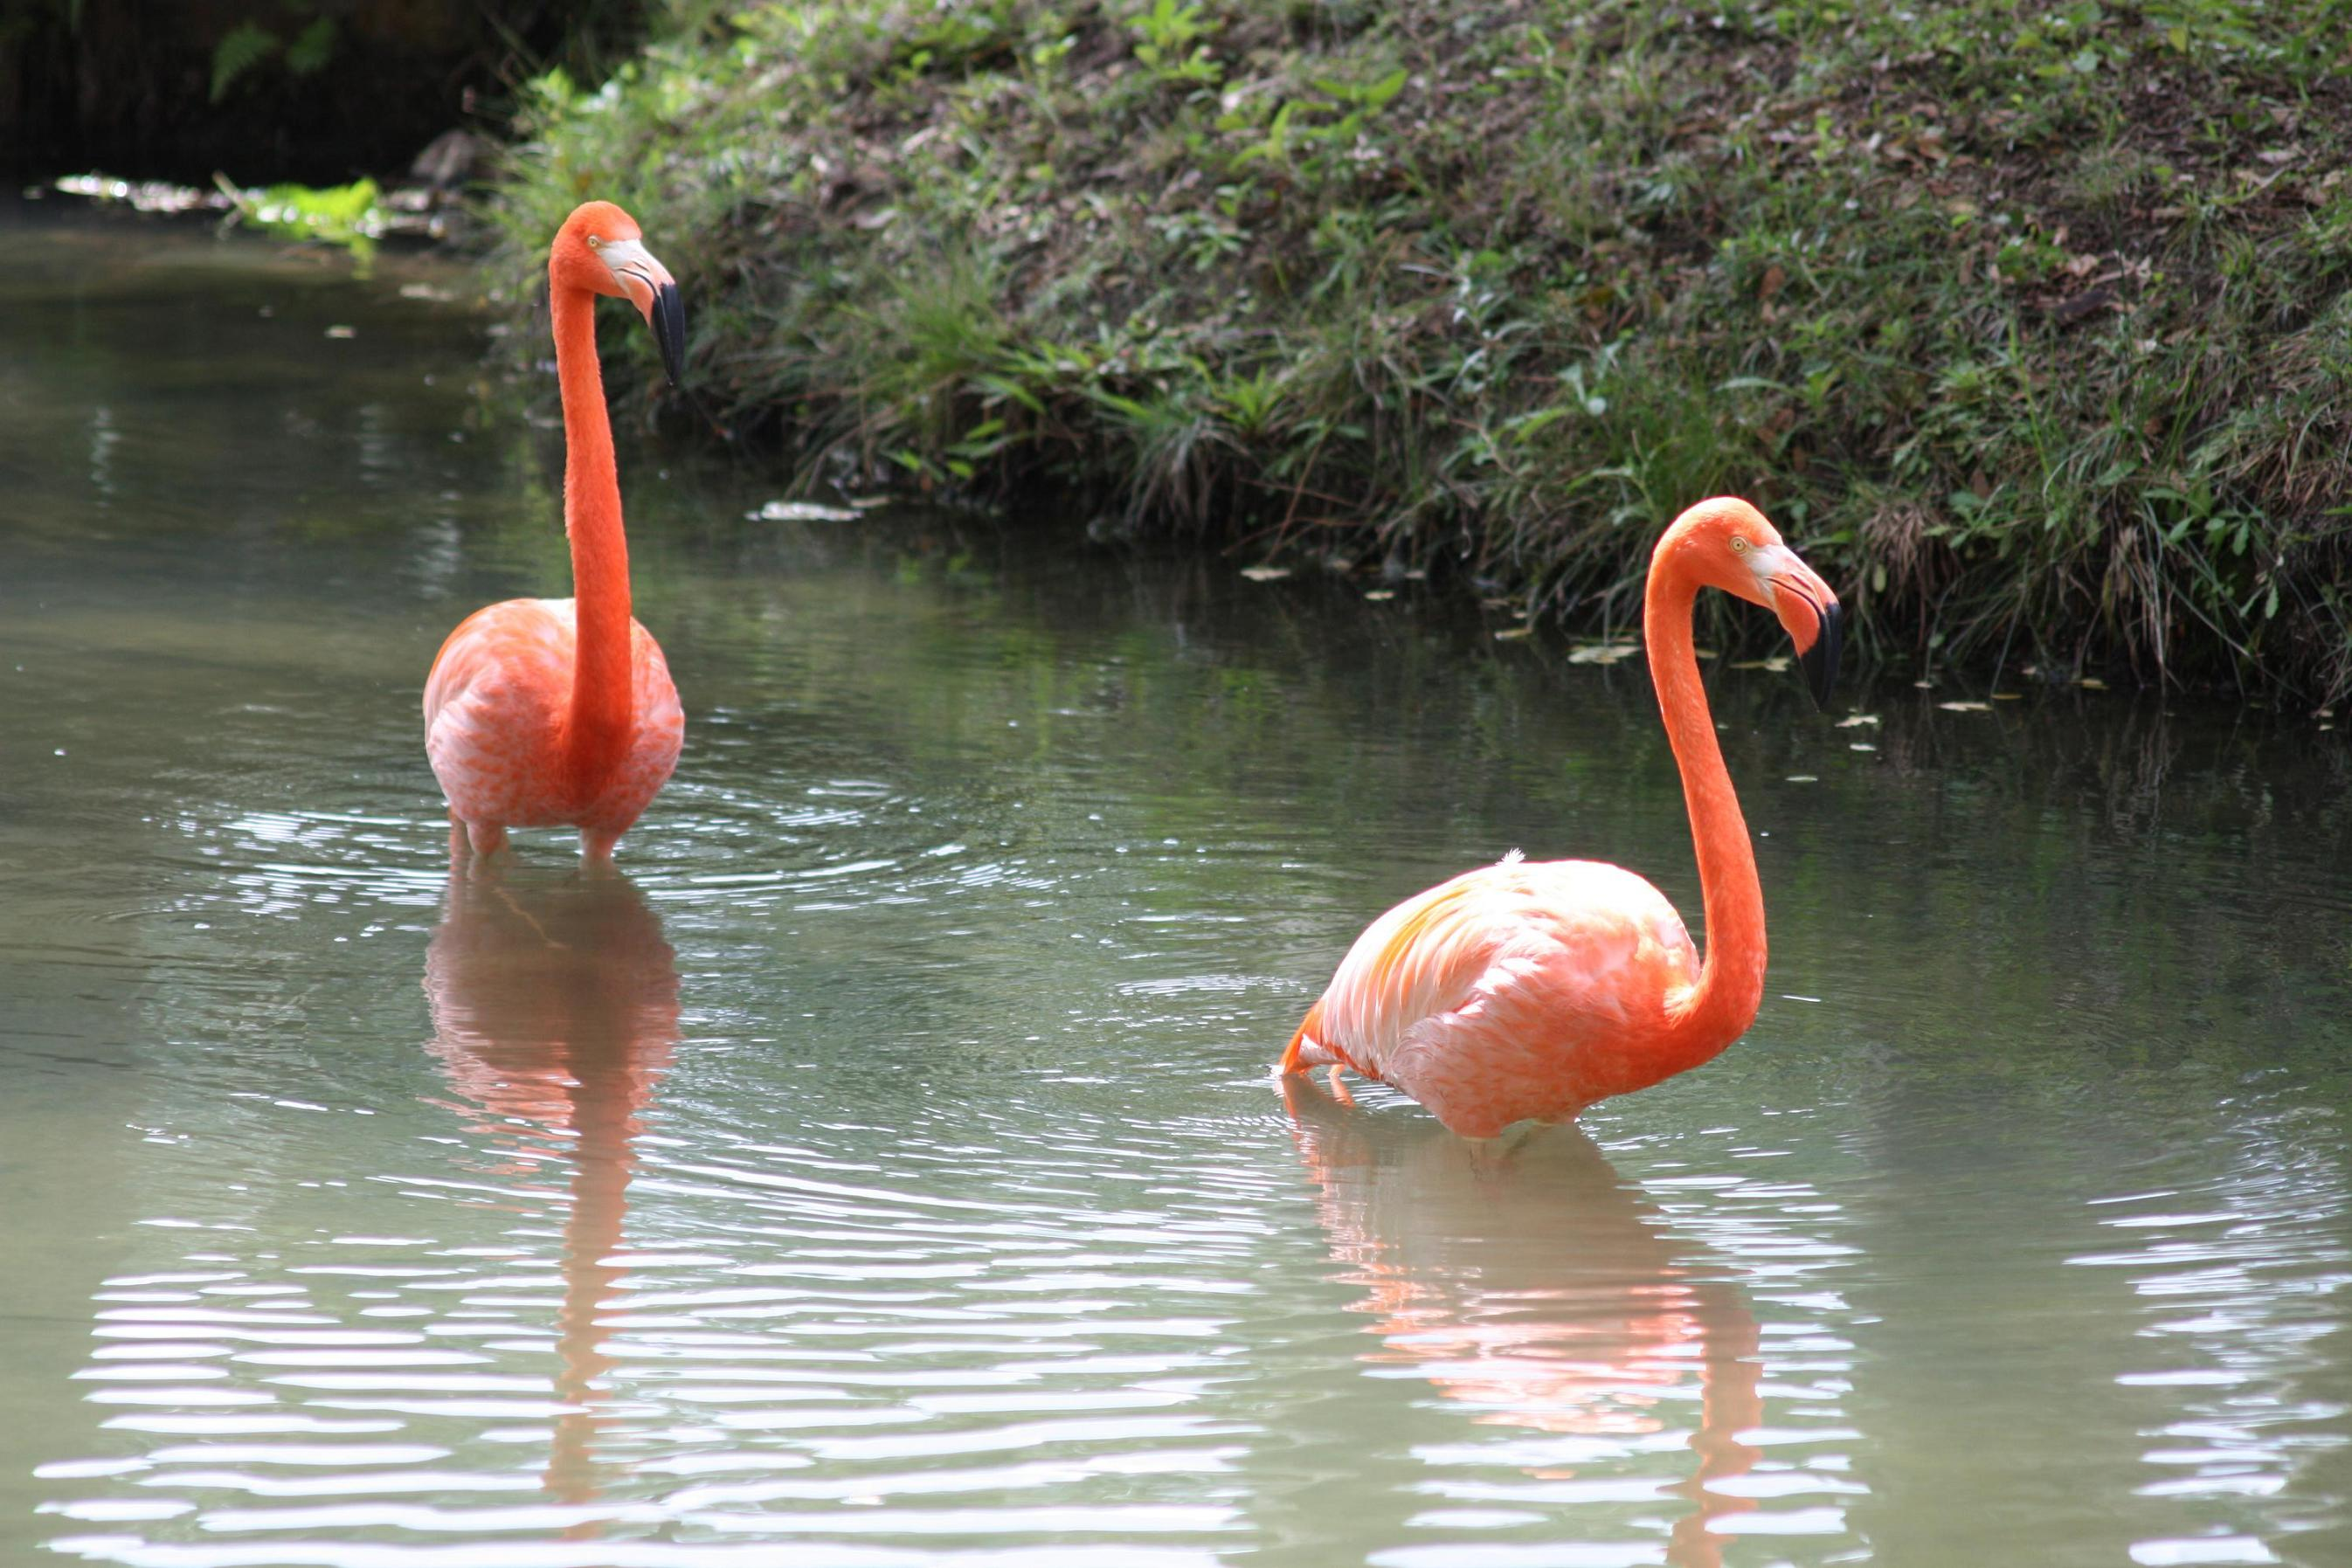 Grues,Flamants,Ibis